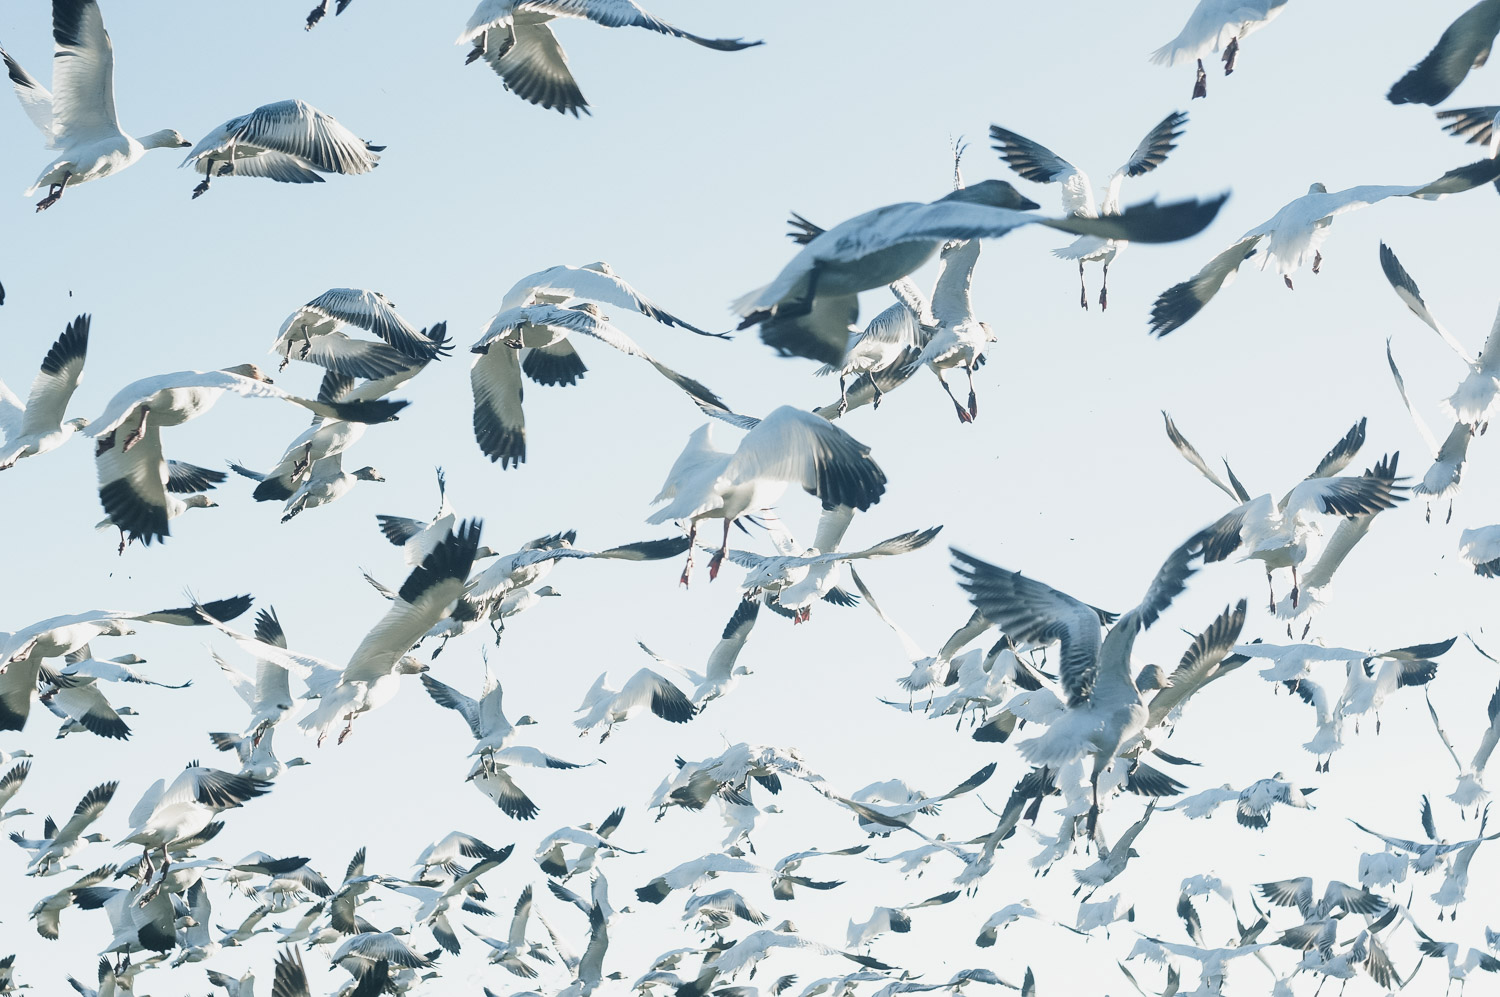 Snow Geese by Adrian Unger